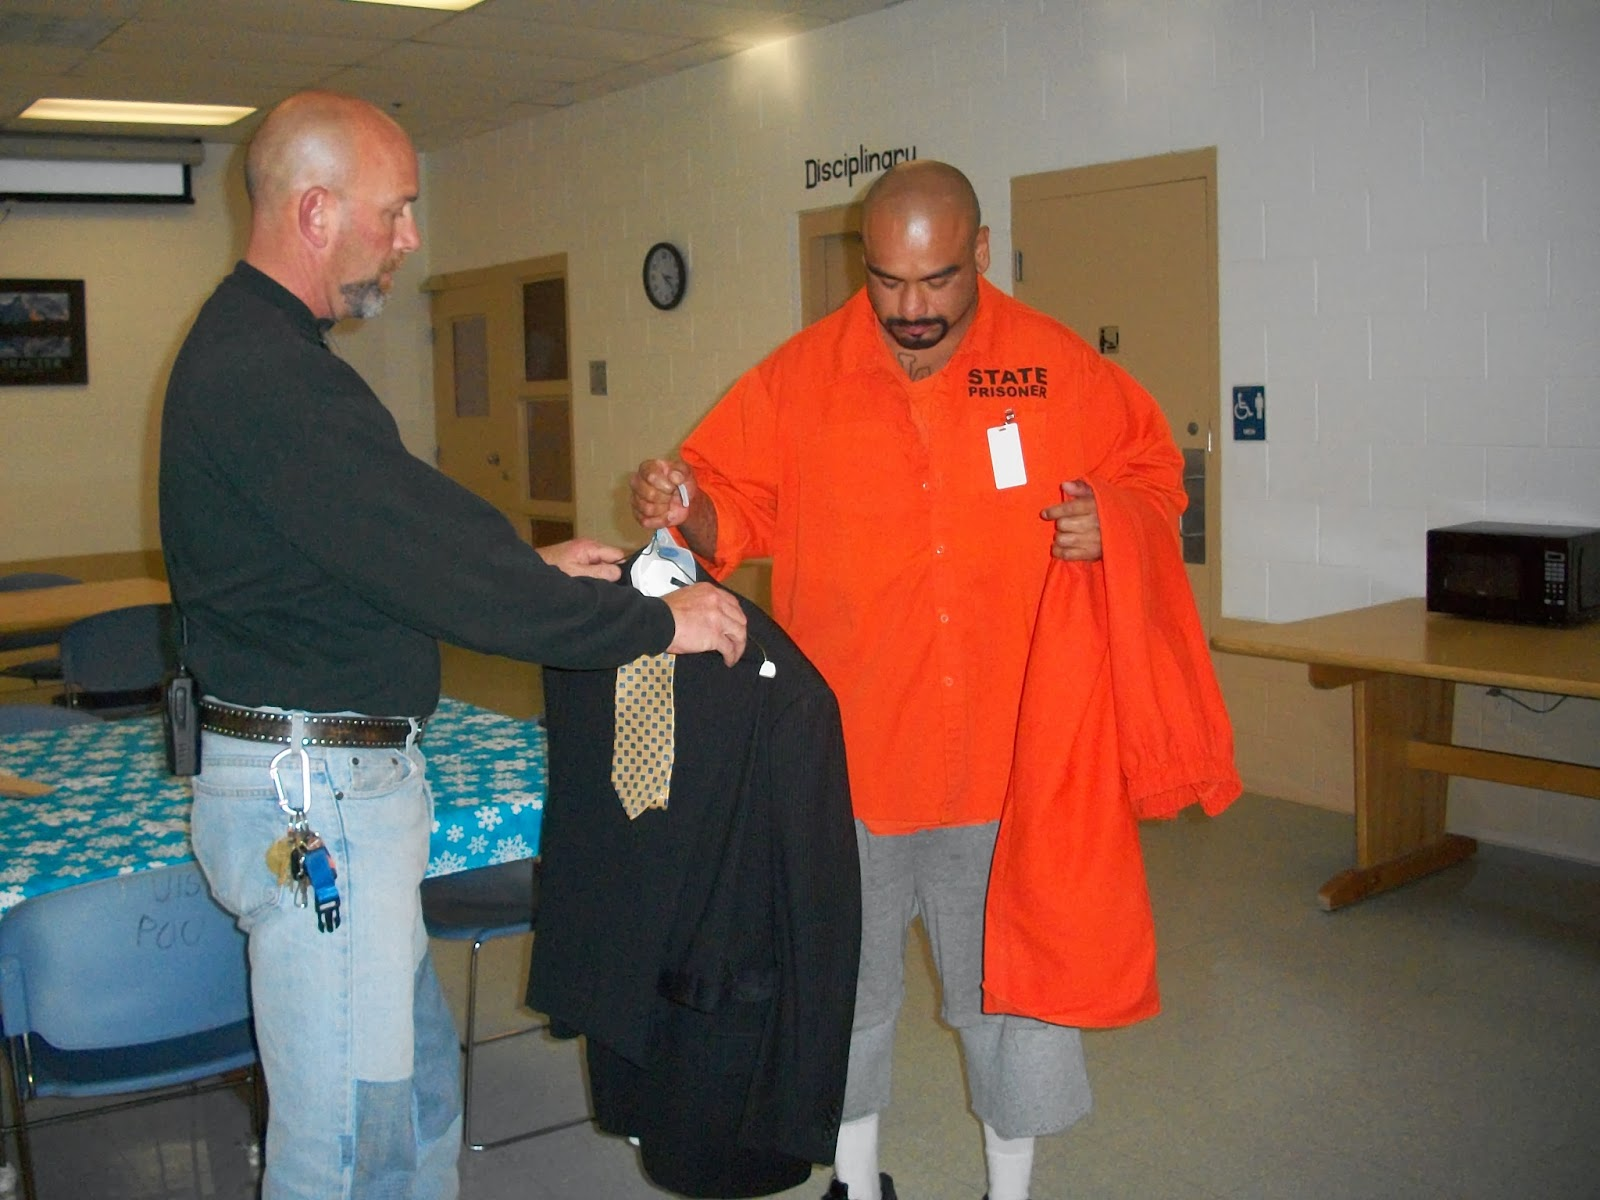 inmate receiving business clothing